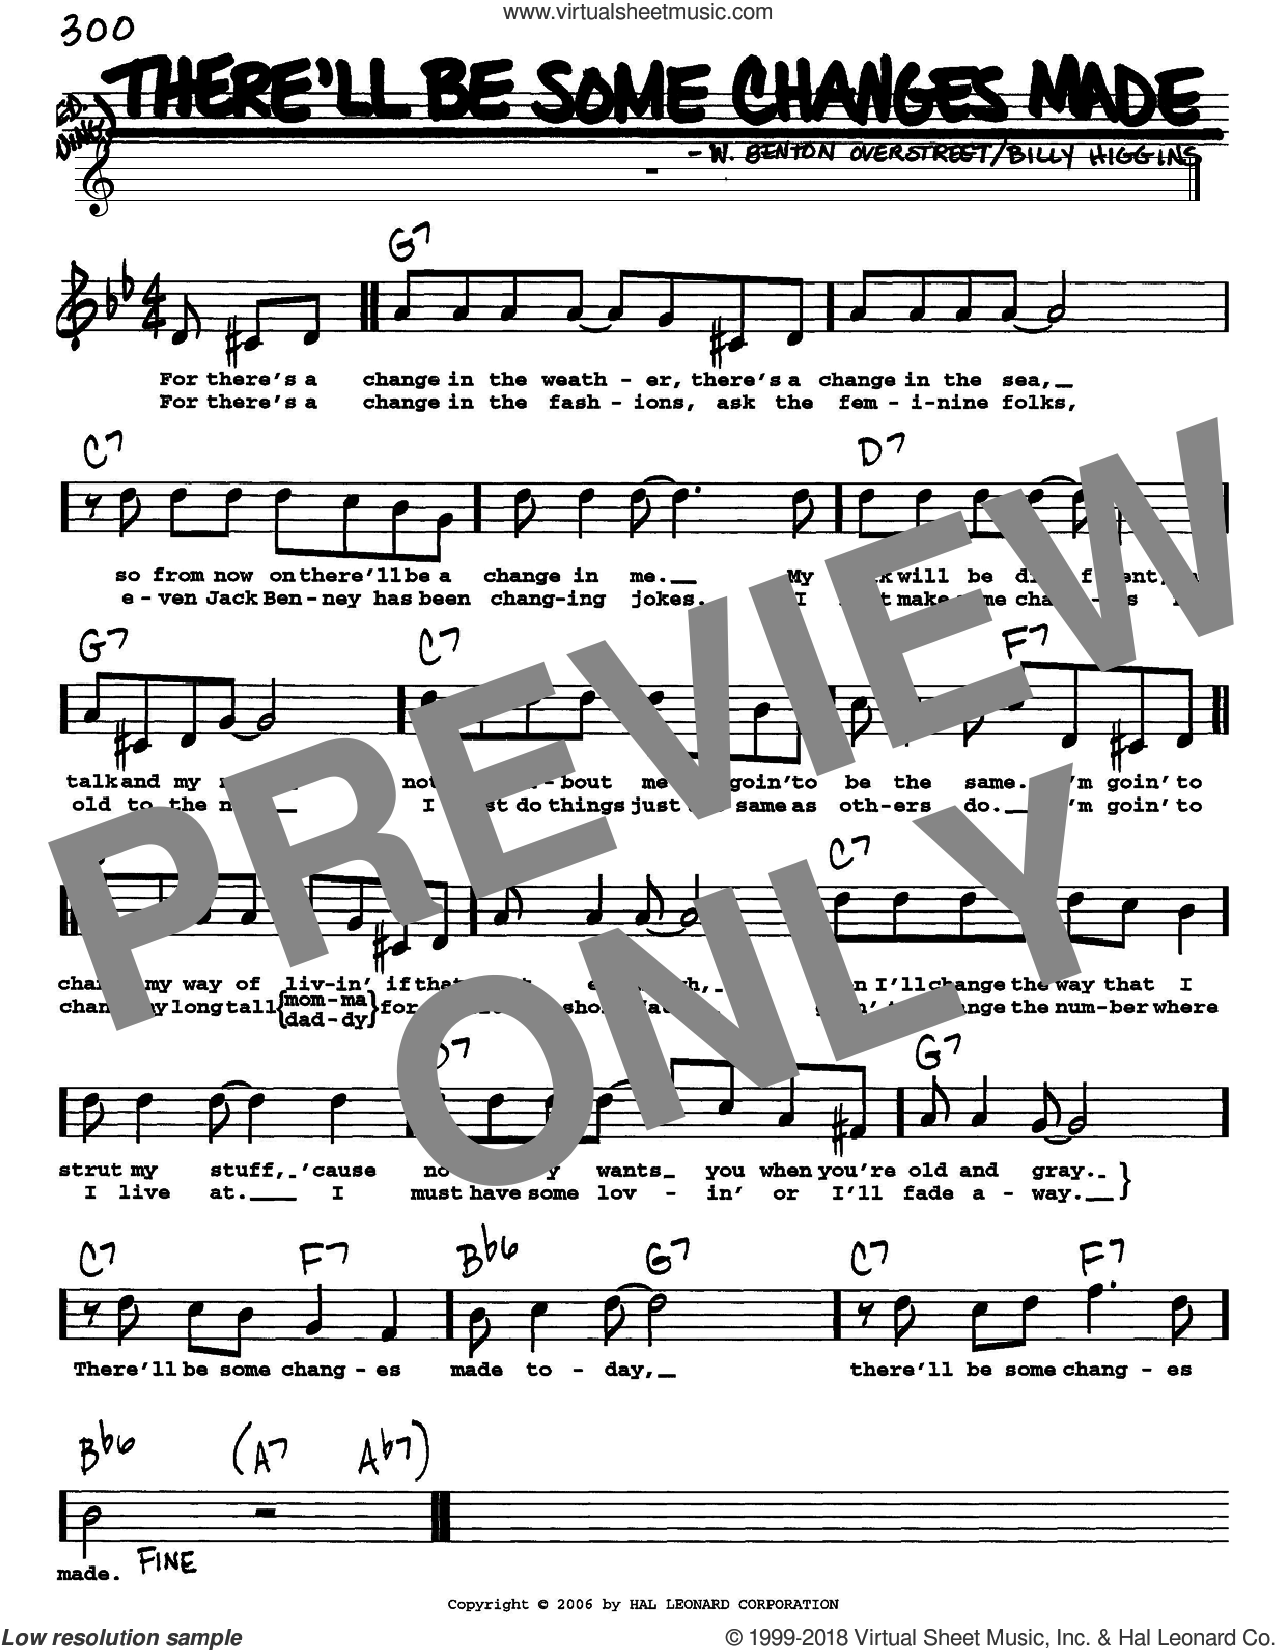 There'll Be Some Changes Made sheet music for voice and other instruments (Vocal Volume 1) by W. Benton Overstreet. Score Image Preview.